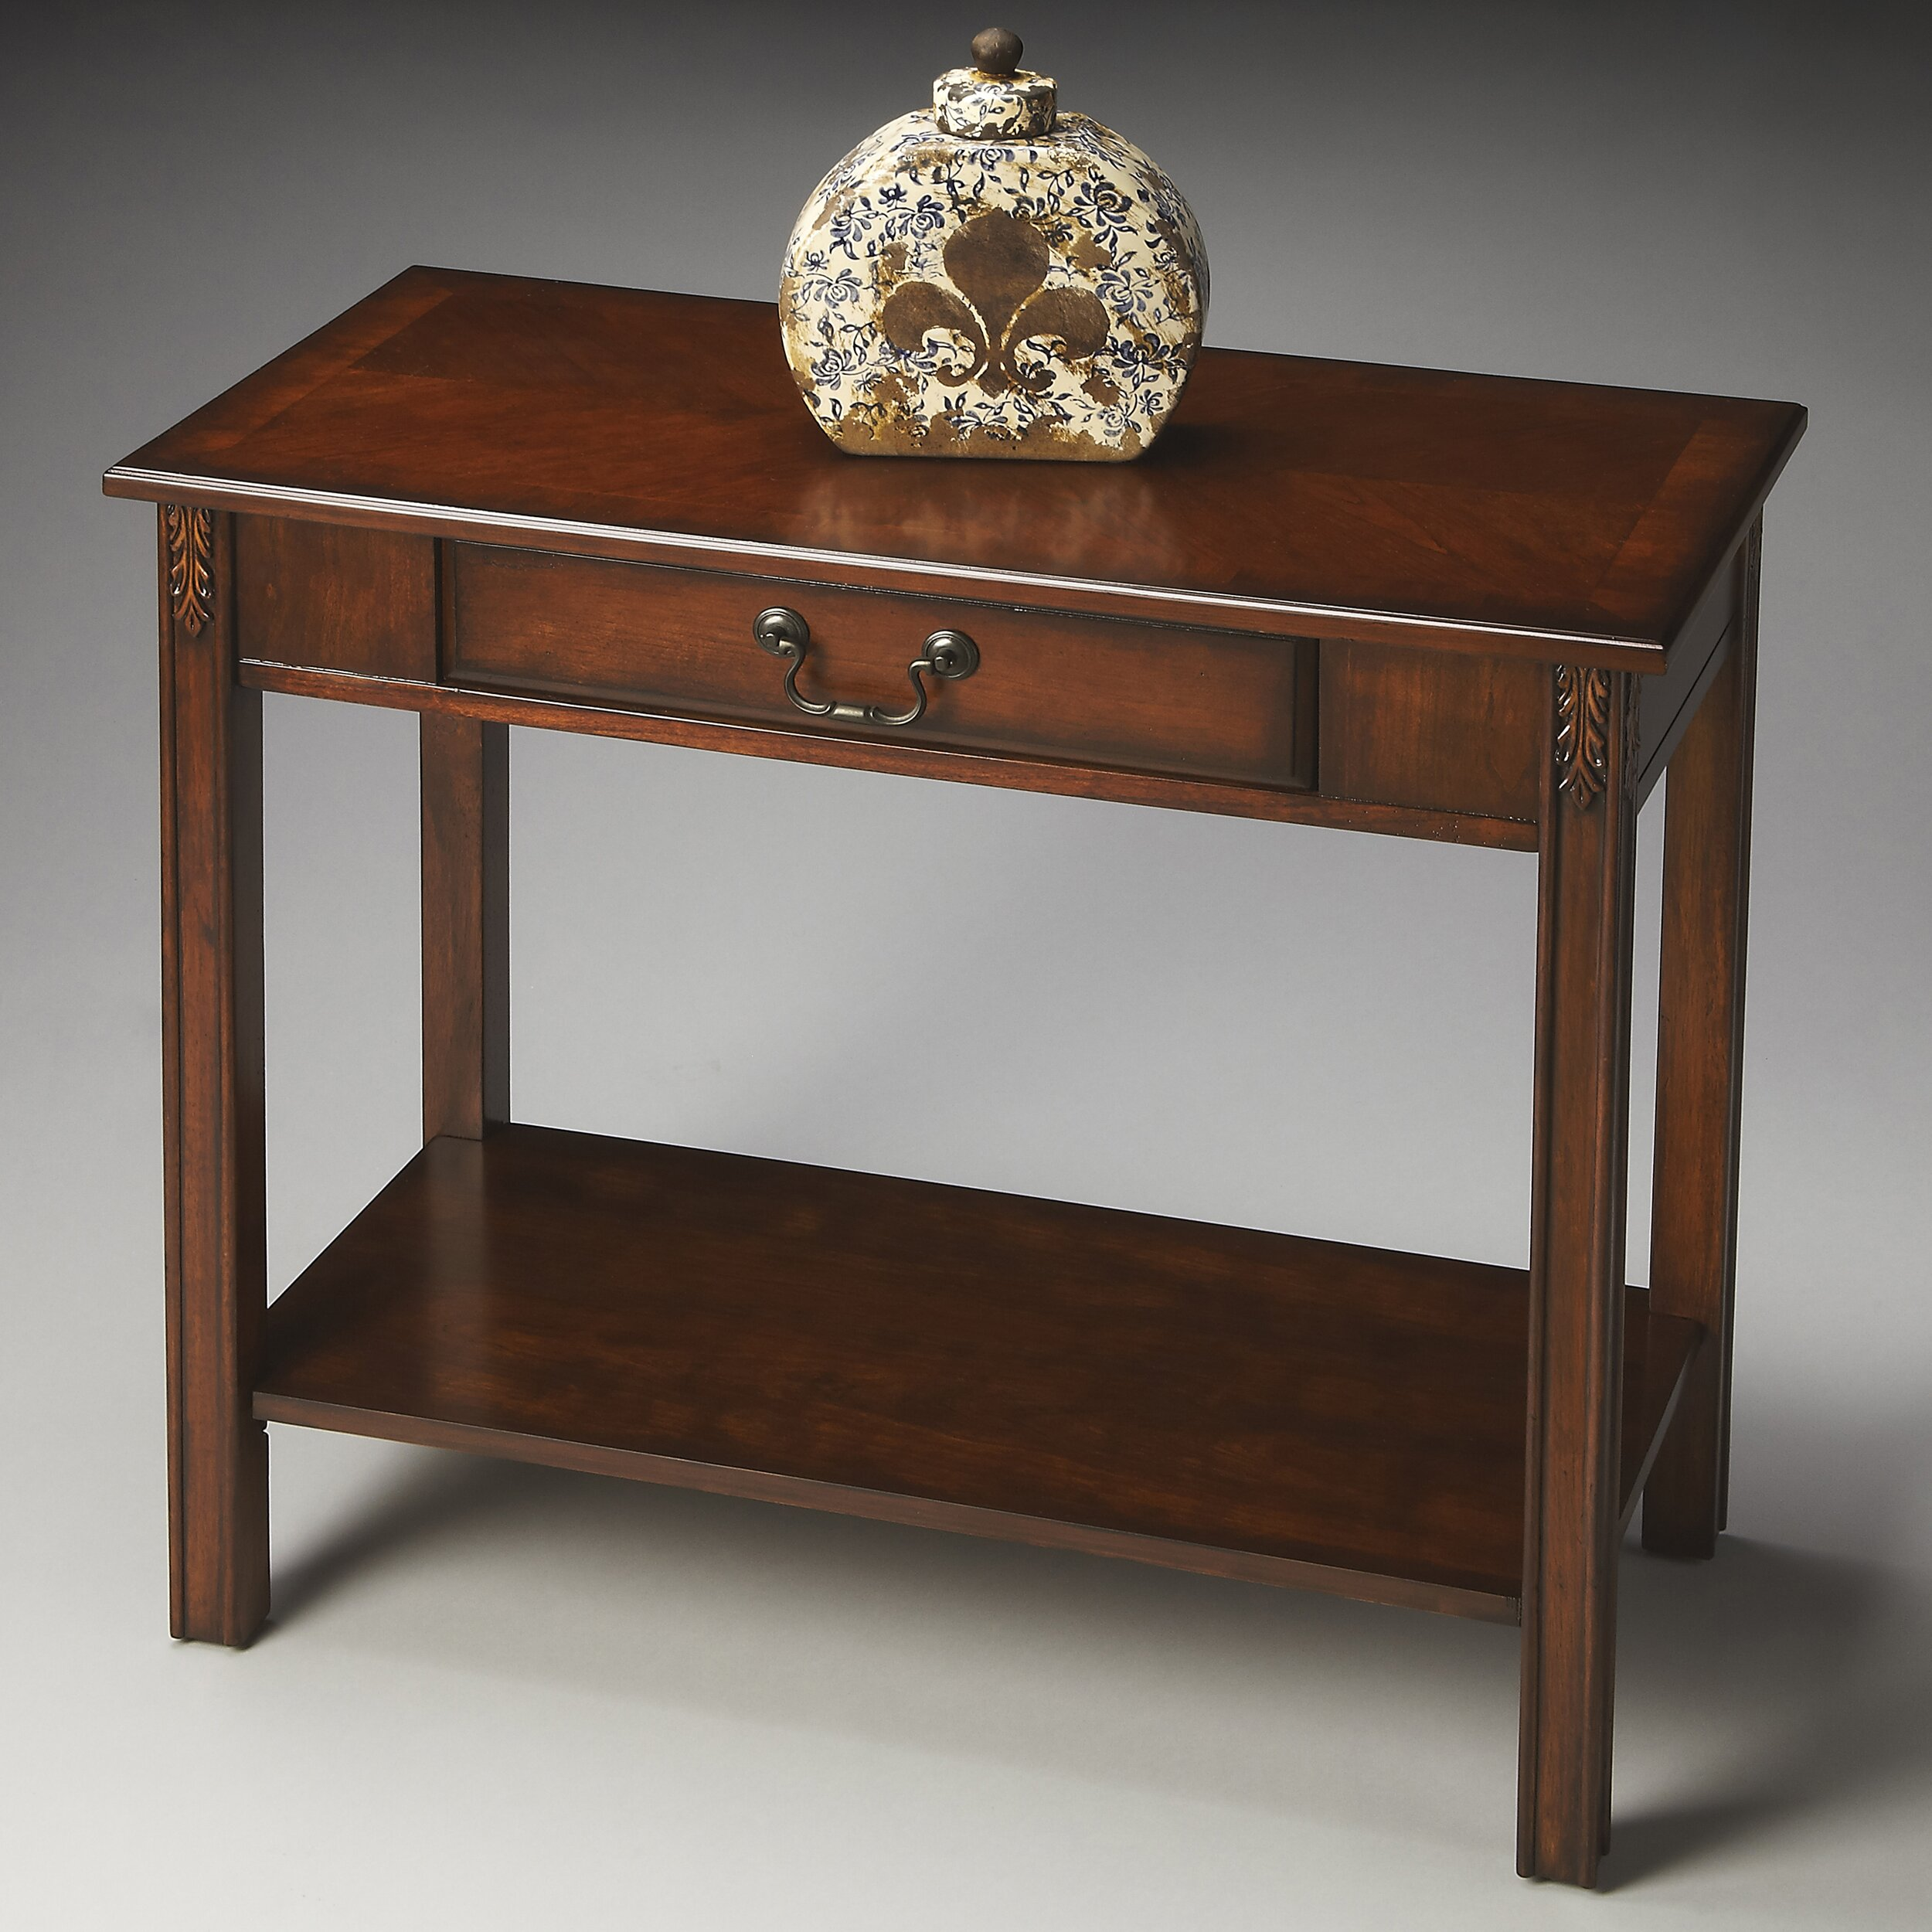 butler sheridan console table reviews wayfair. Black Bedroom Furniture Sets. Home Design Ideas